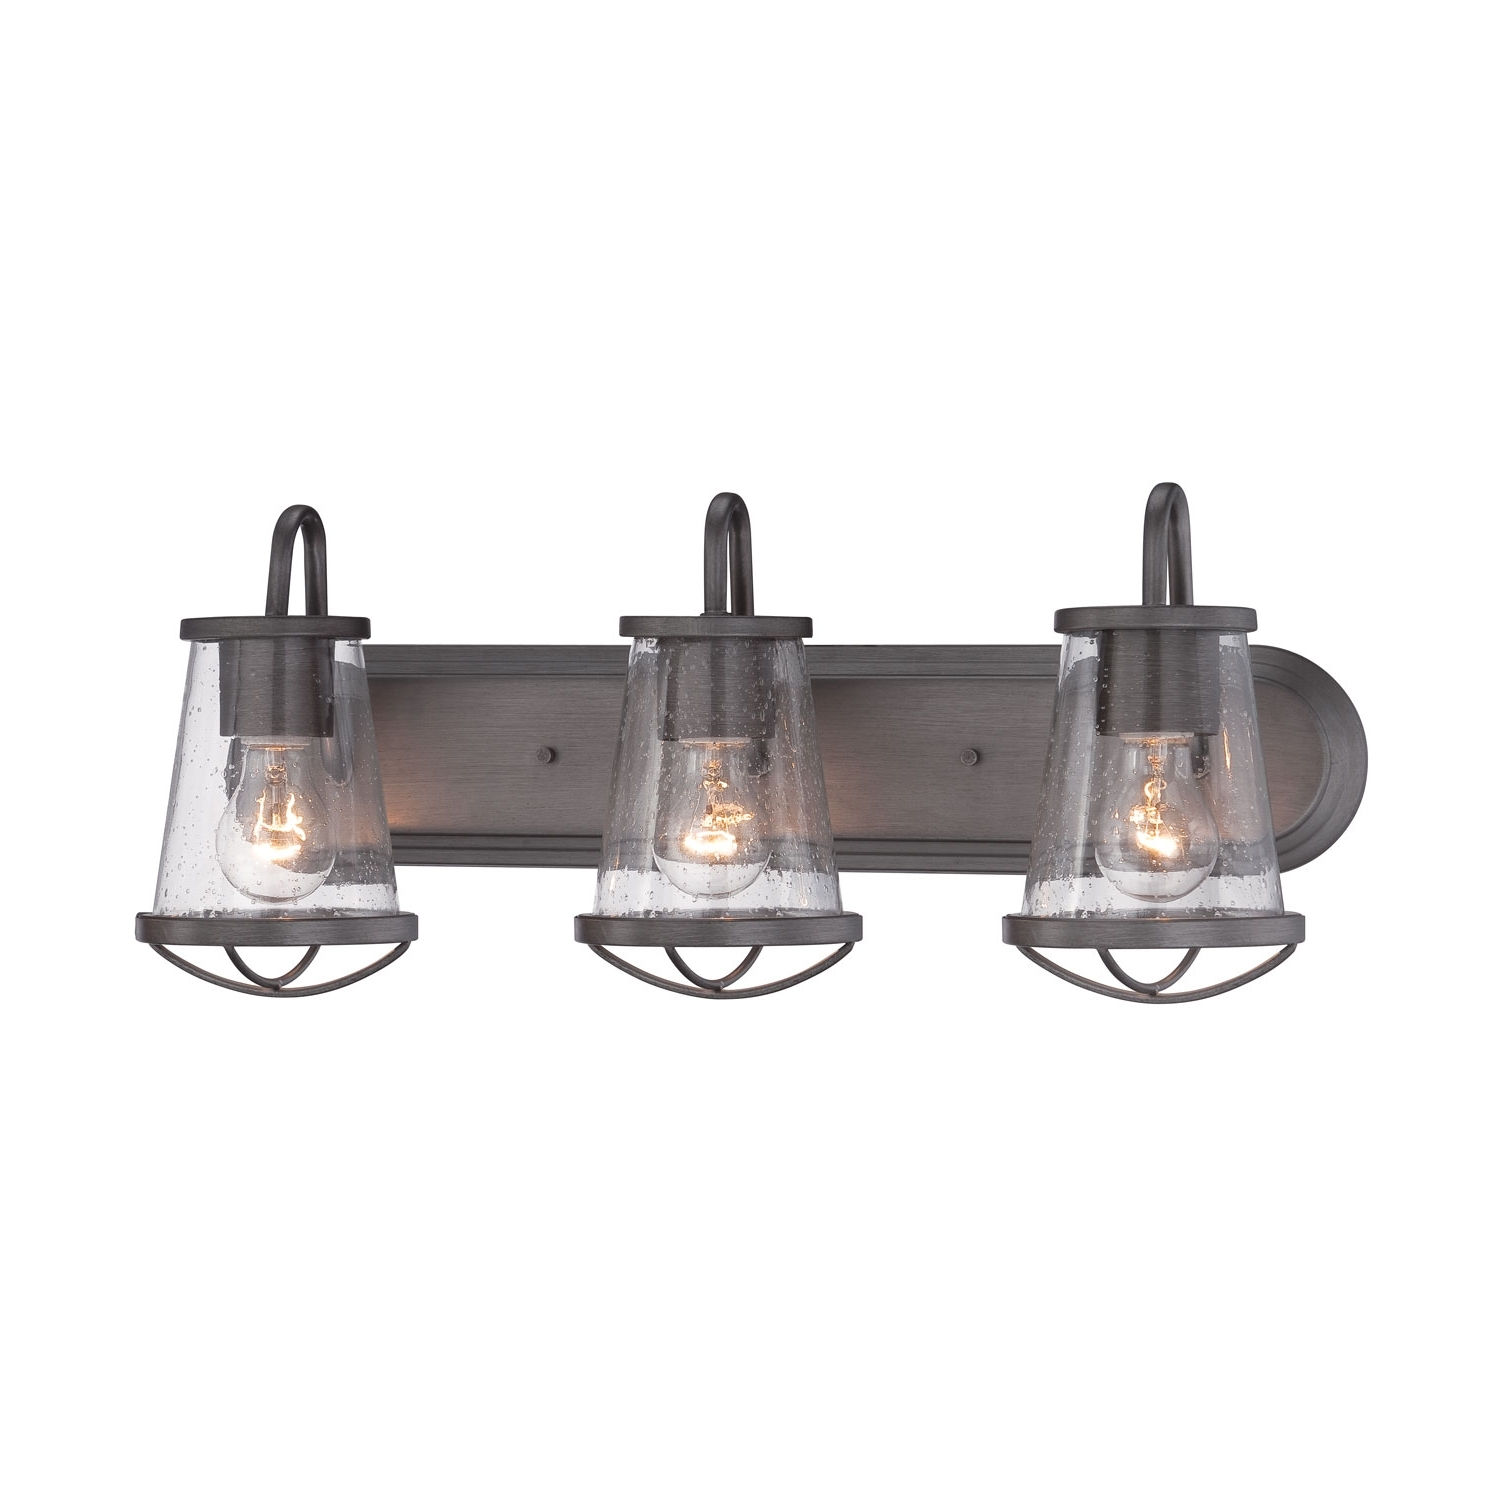 Most Recently Released Fountain Darby Weathered Iron Three Light Bath Bar On Sale Intended For Bathroom Lighting With Matching Chandeliers (View 14 of 20)